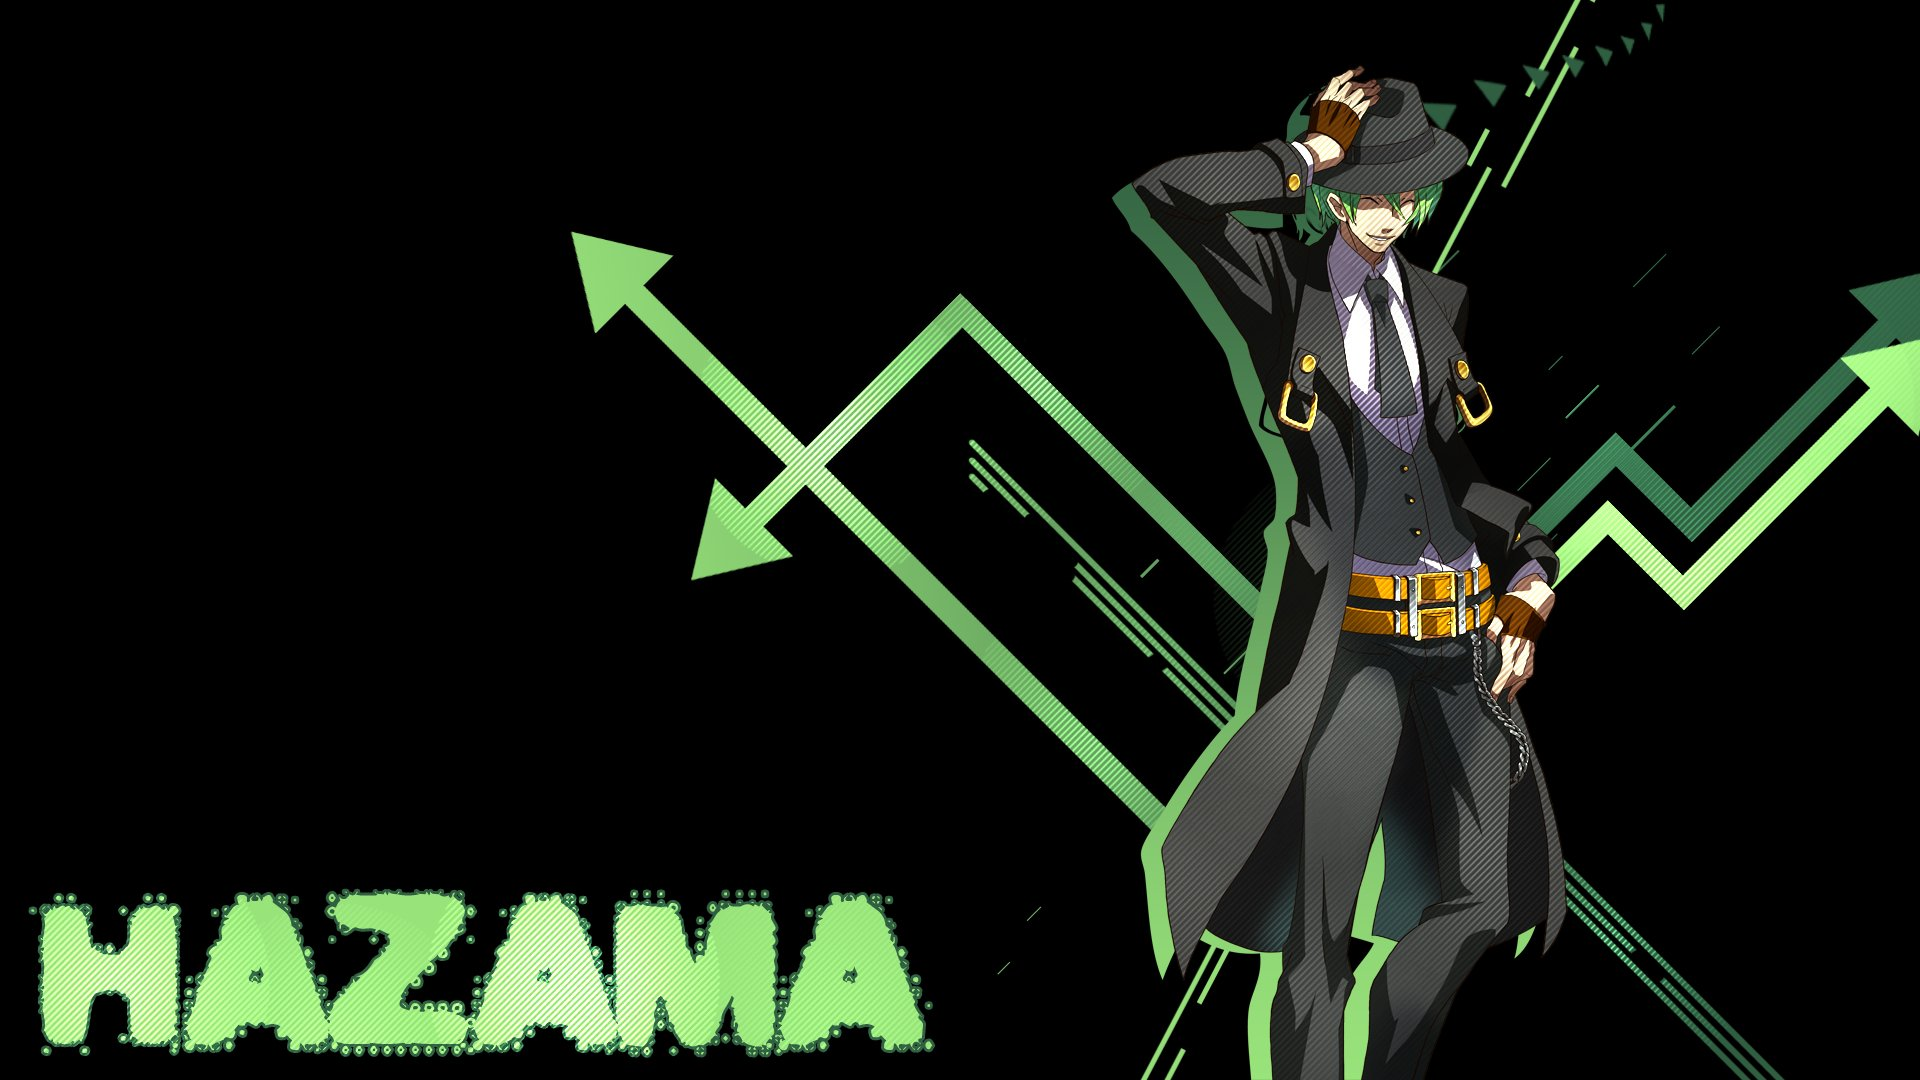 Anime - Blazblue  Hazama (Blazblue) Wallpaper